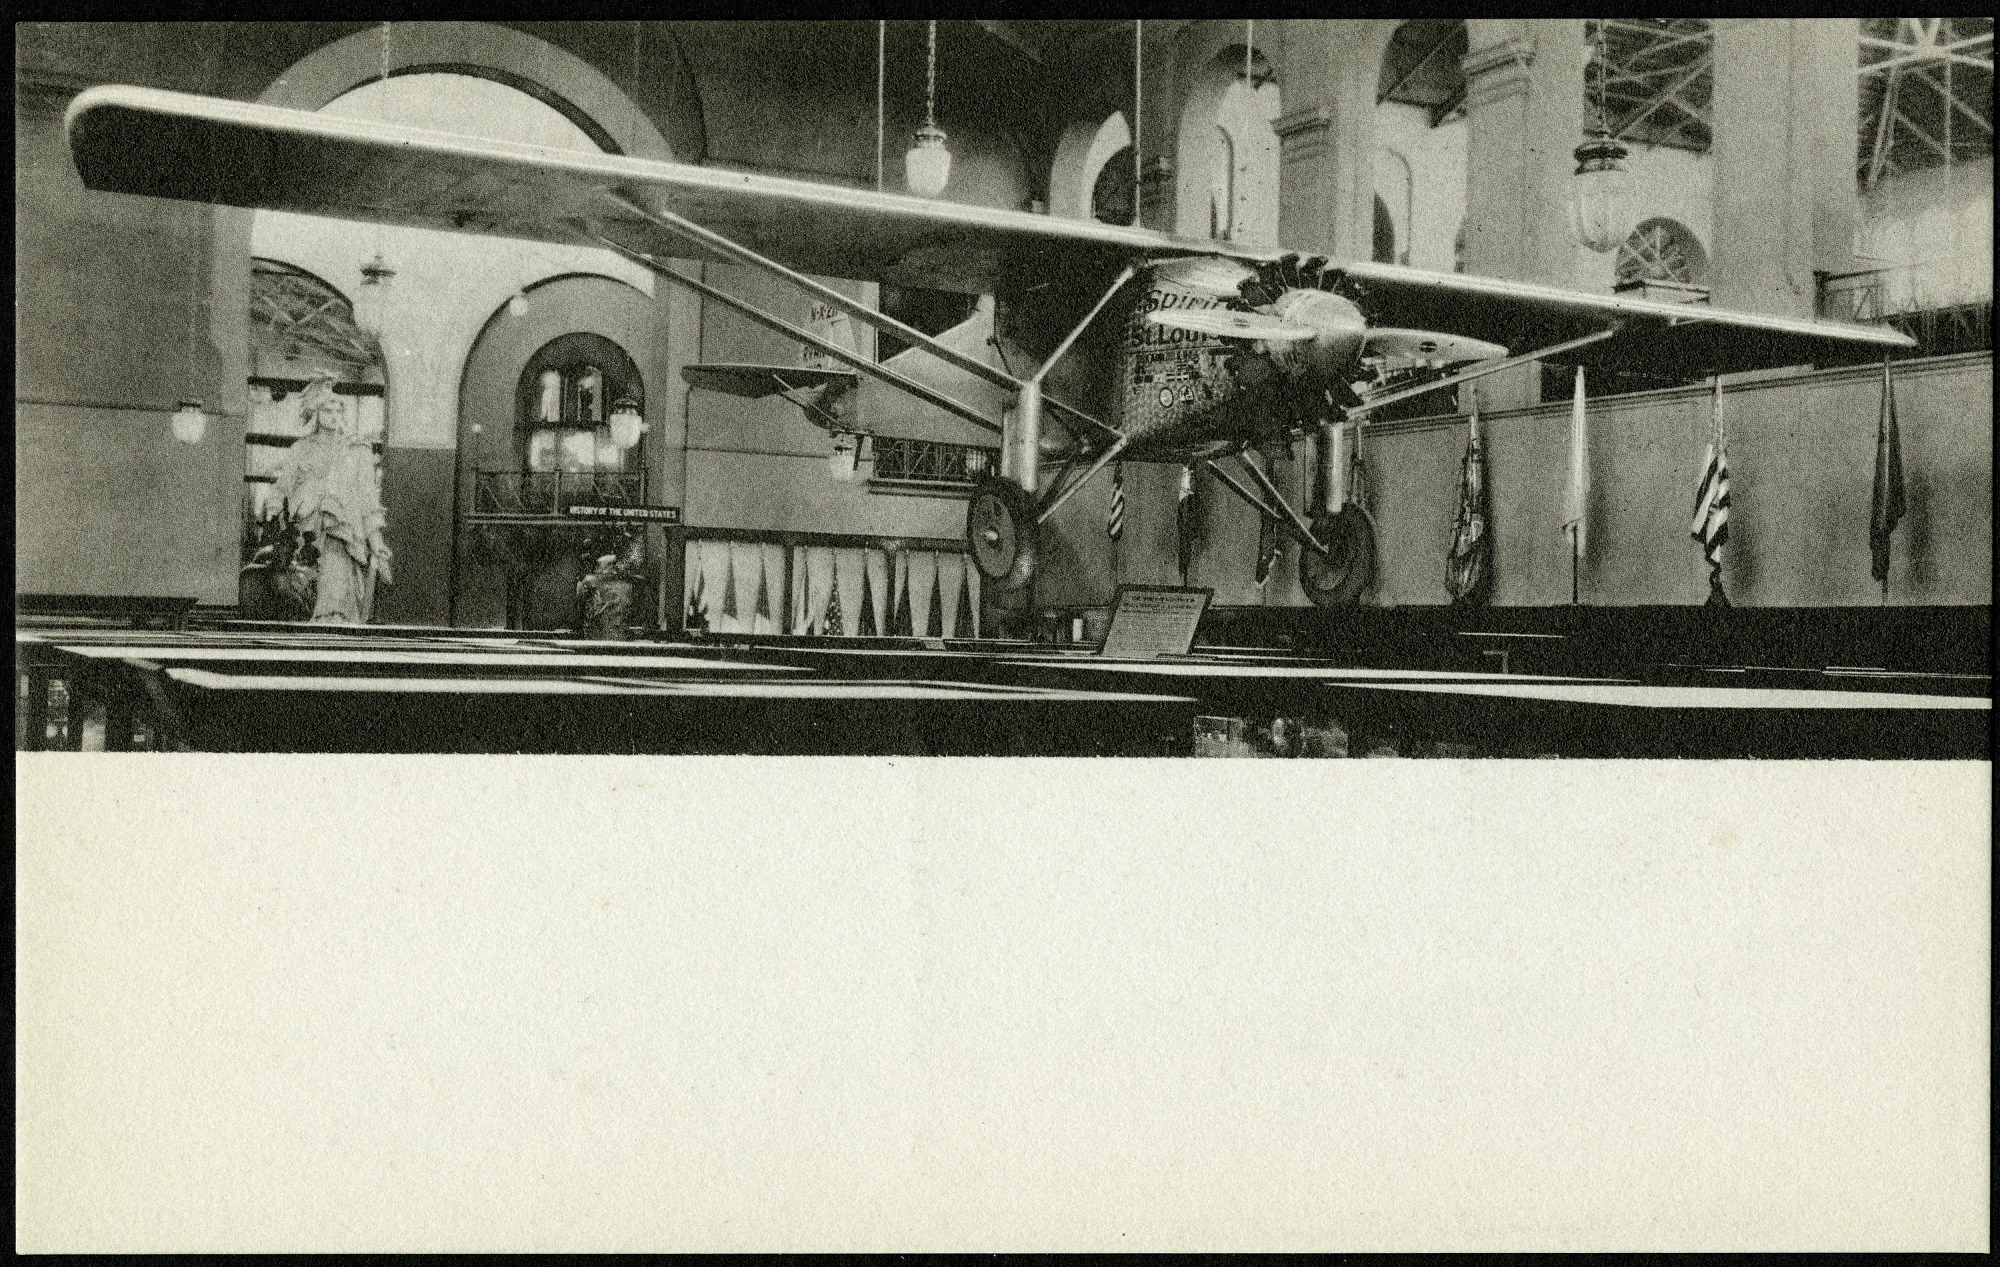 """Postcard of the """"Spirit of St. Louis"""""""